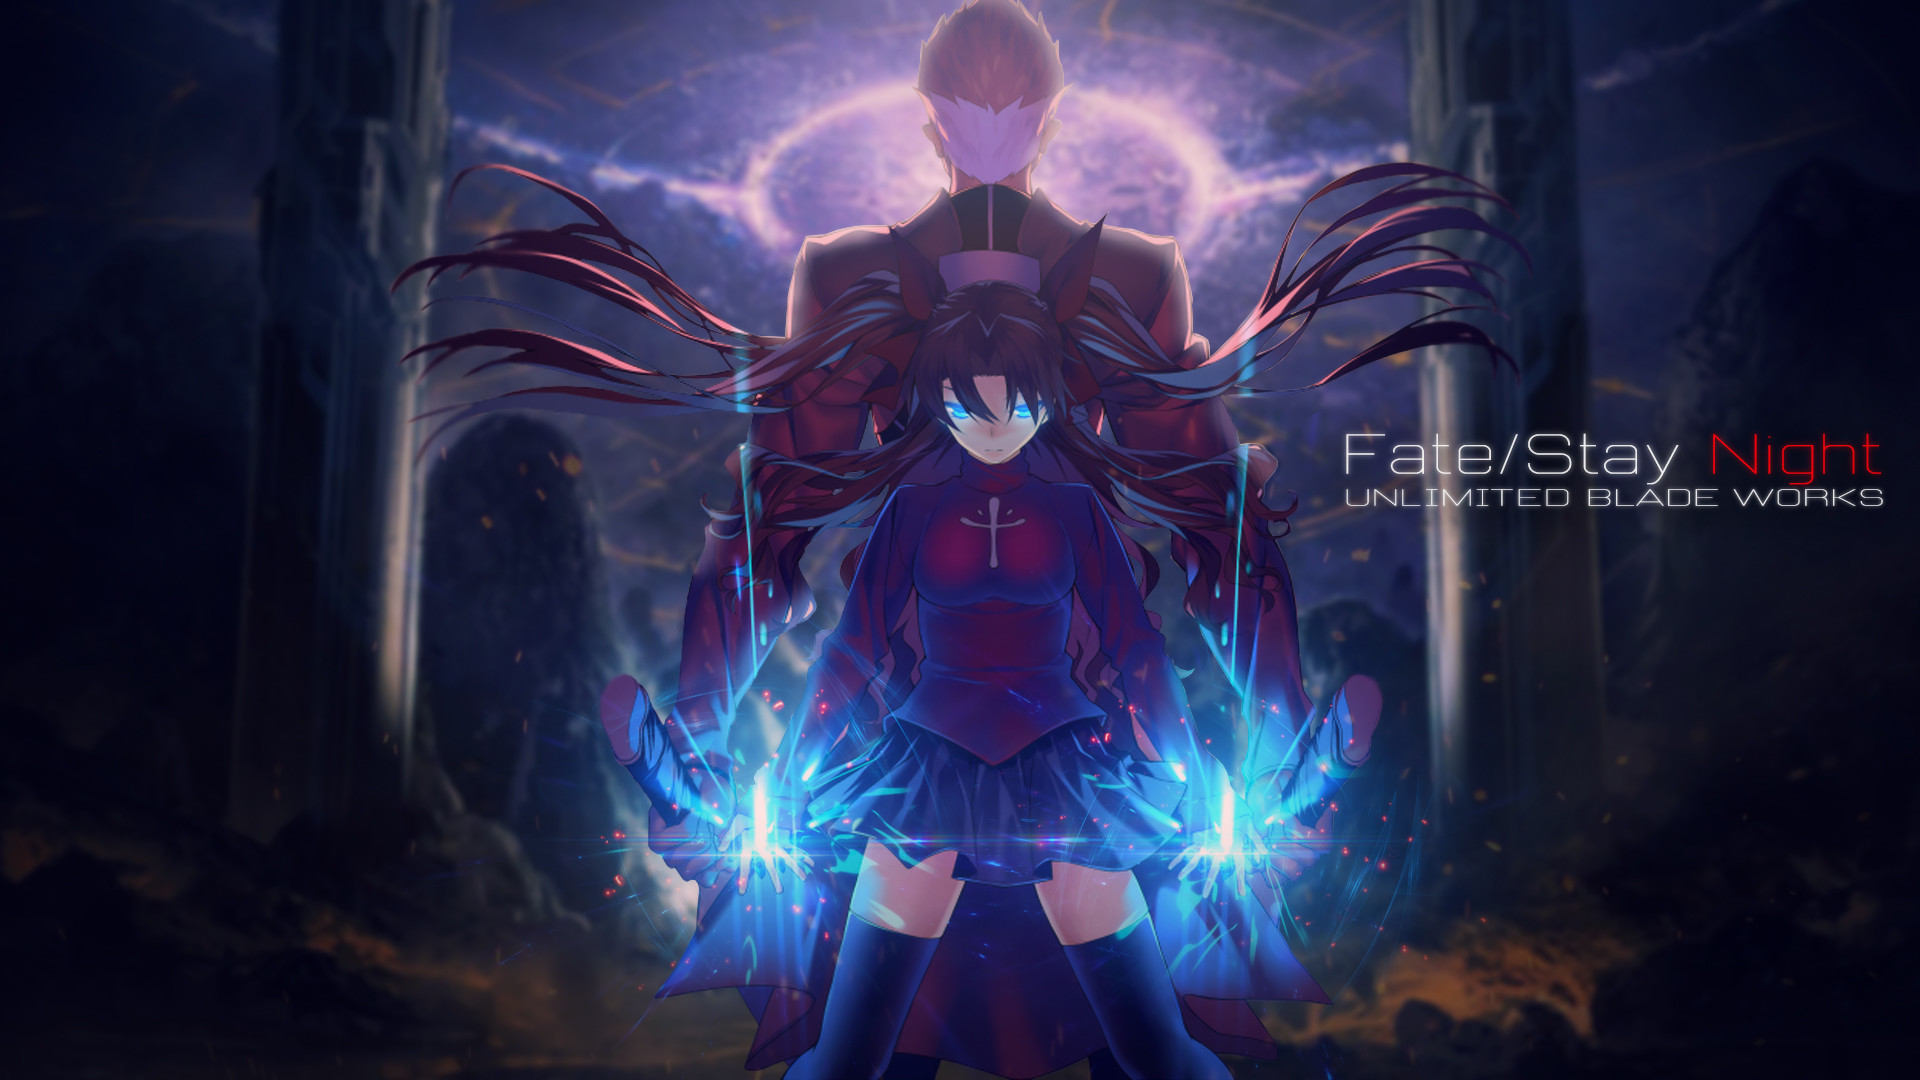 1920x1080 Fate Stay Night Archer Wallpapers Widescreen